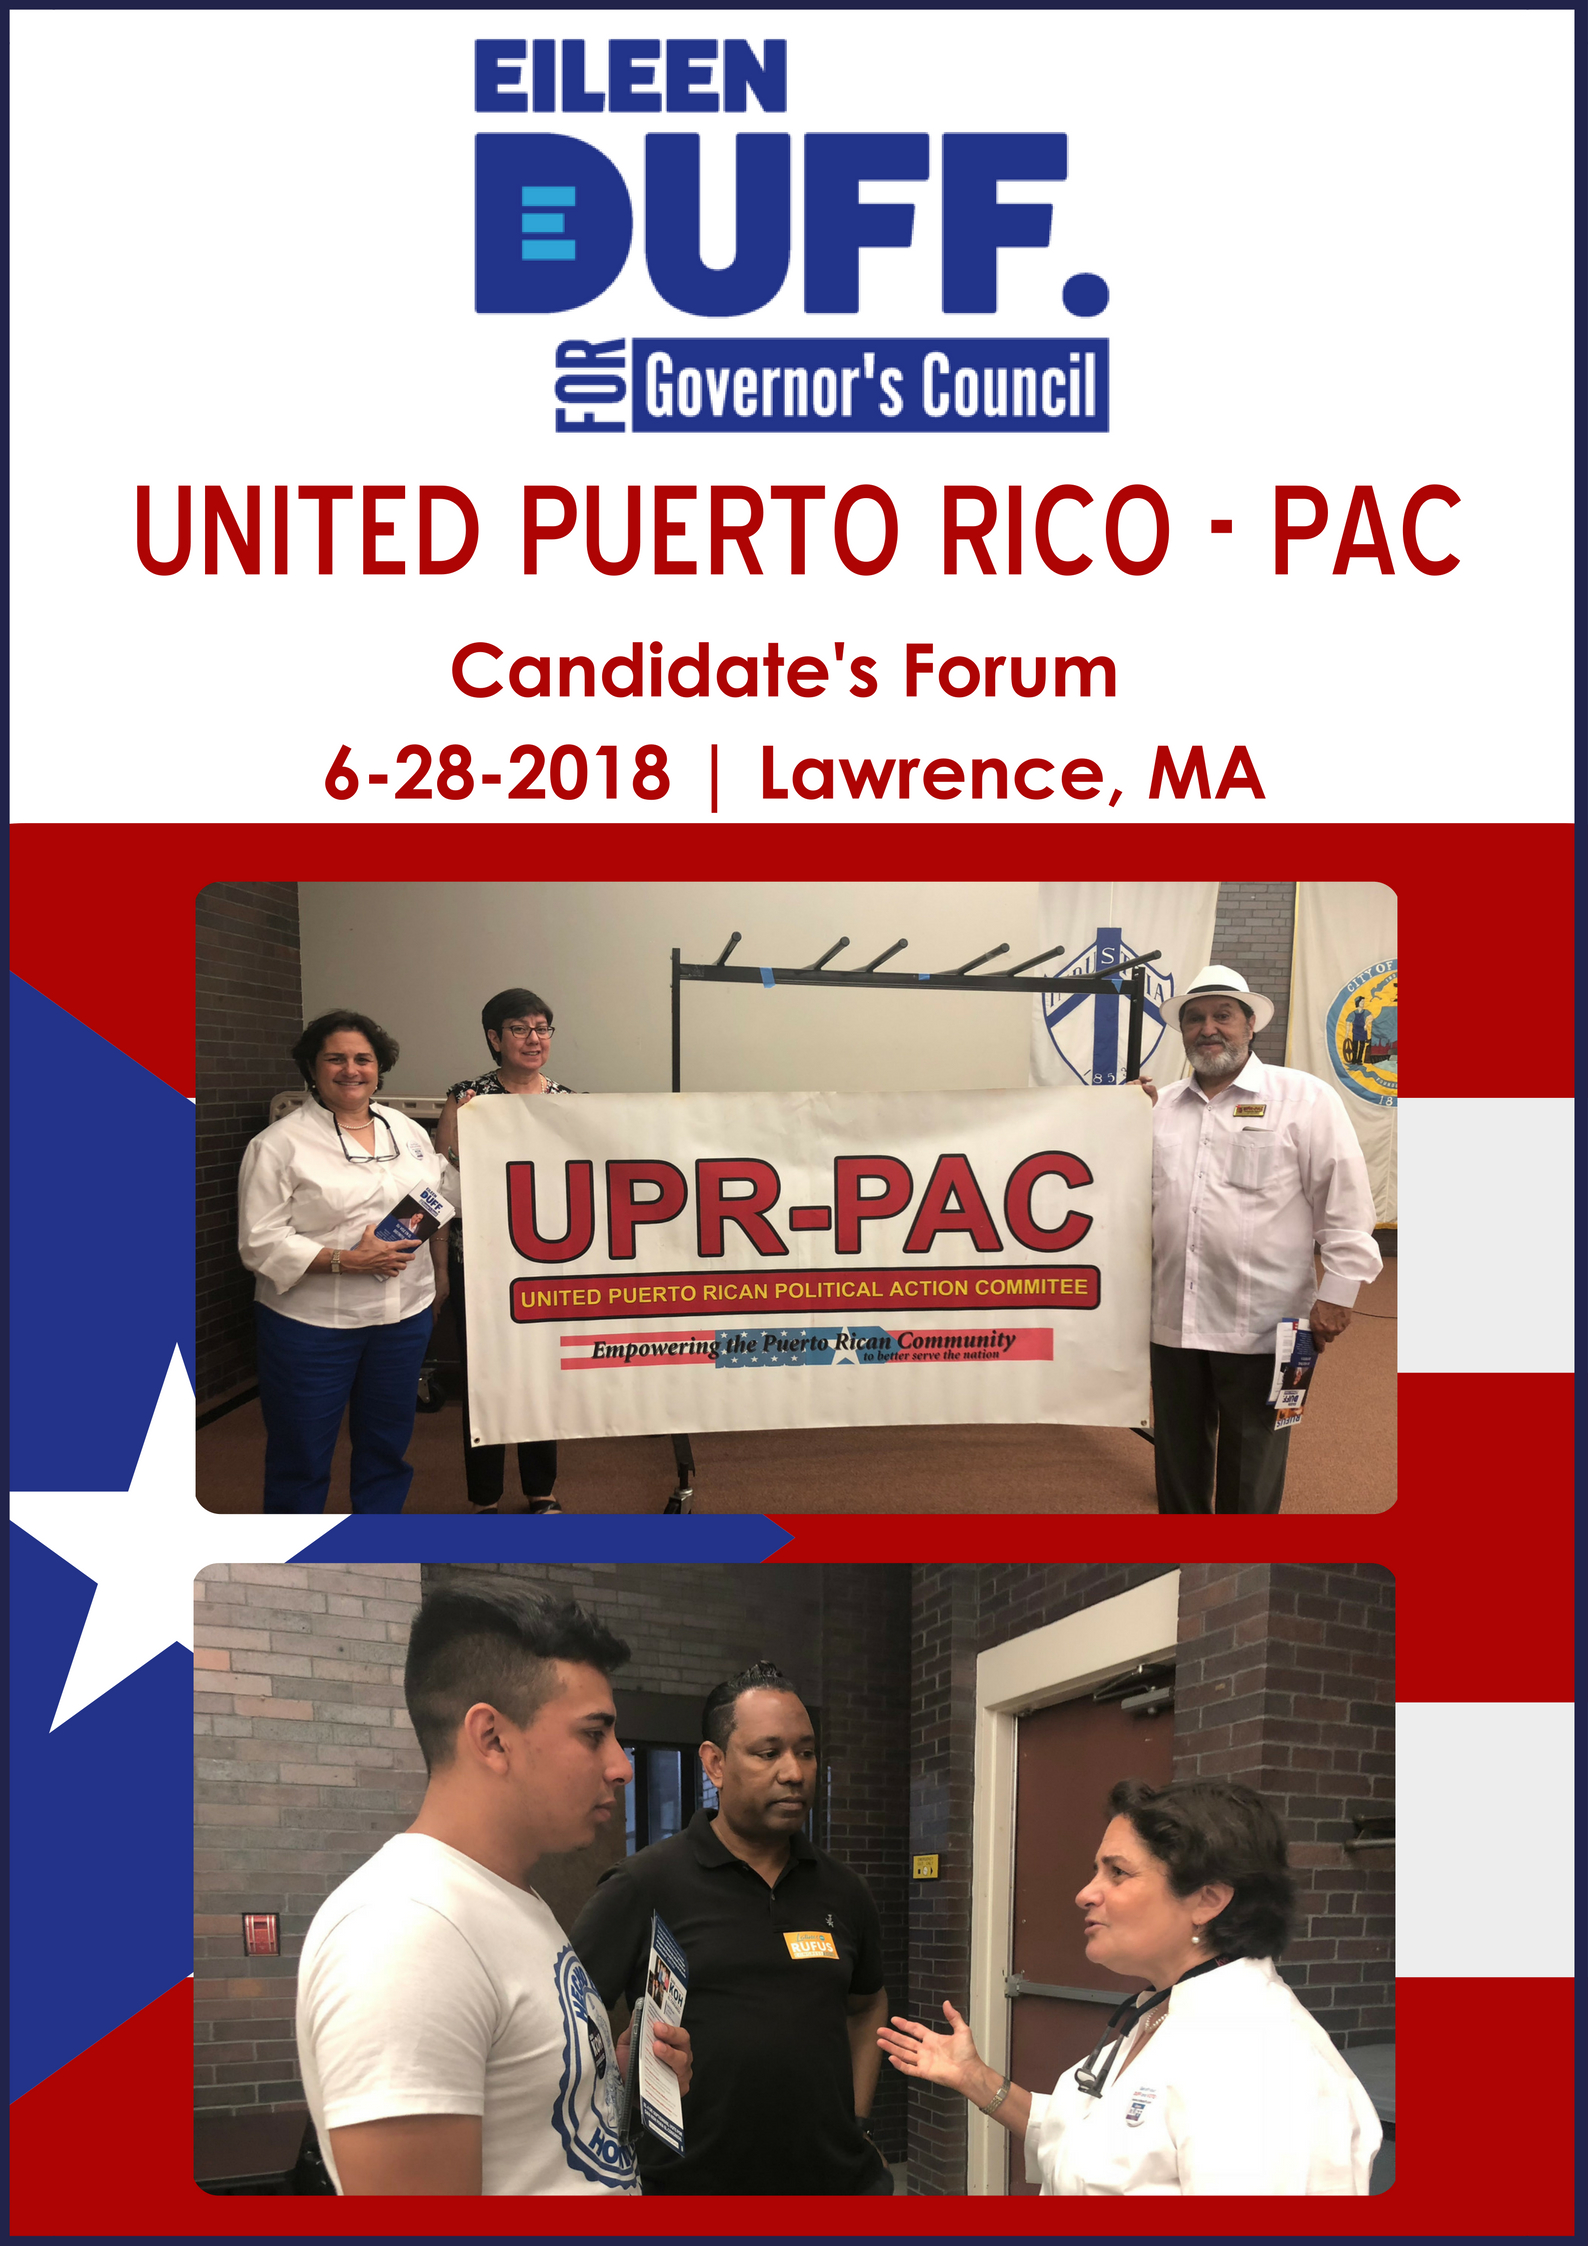 UPR-PAC CANDIDATE'S FORUM